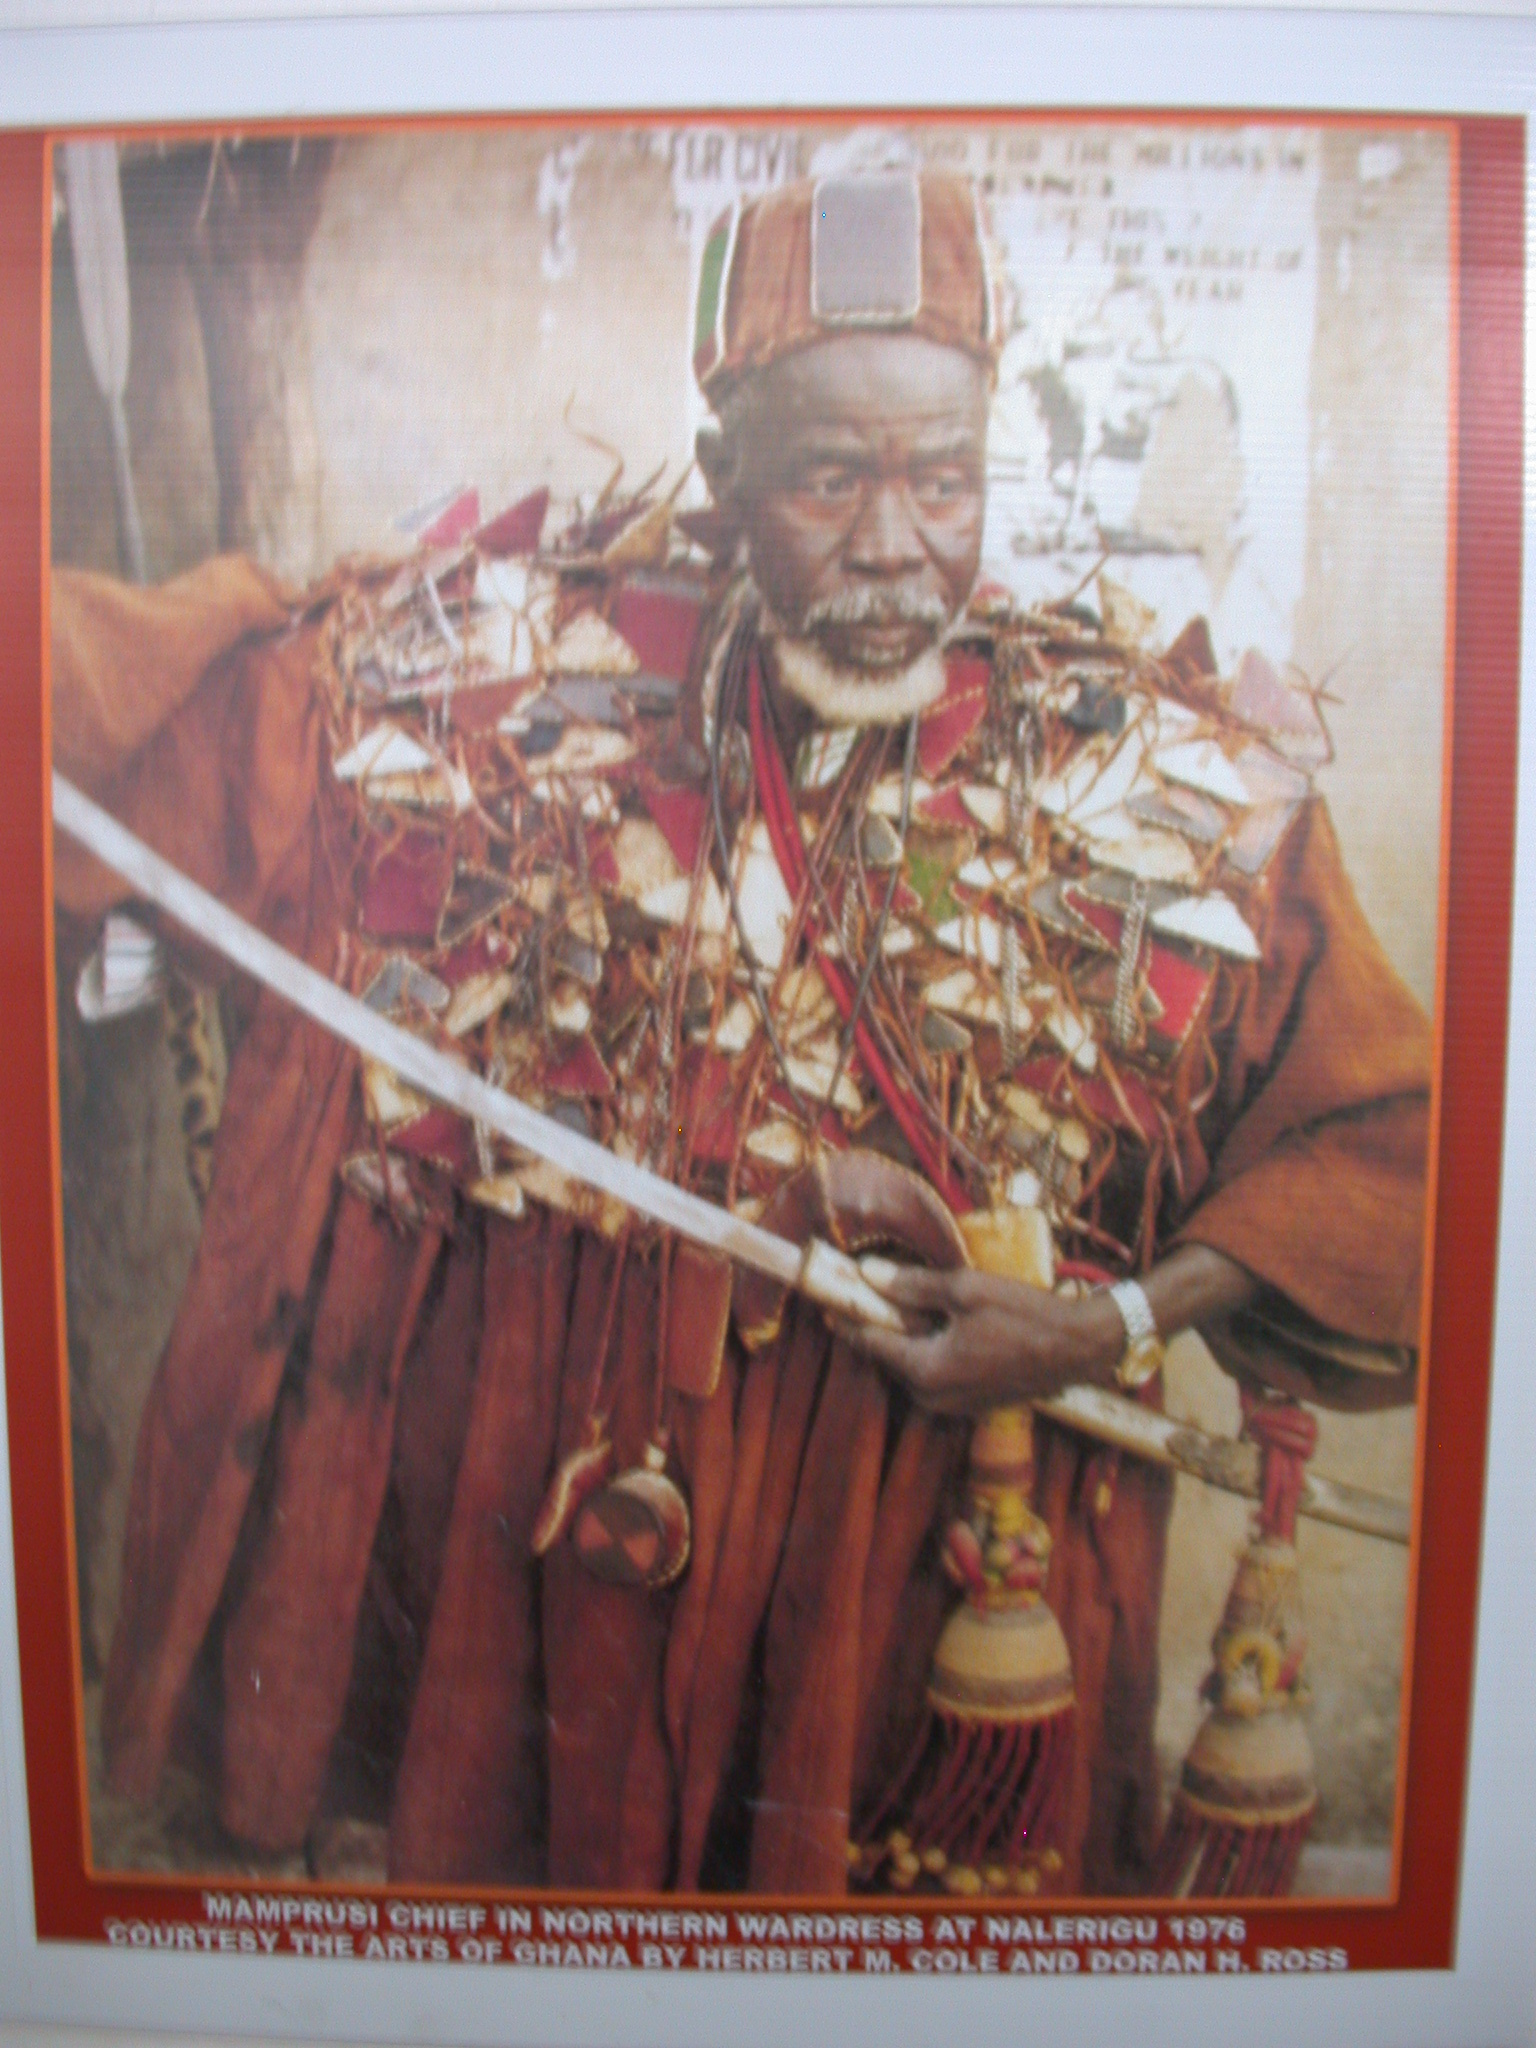 Mamprusi Chief in Northern Wardress, National Museum, Accra, Ghana